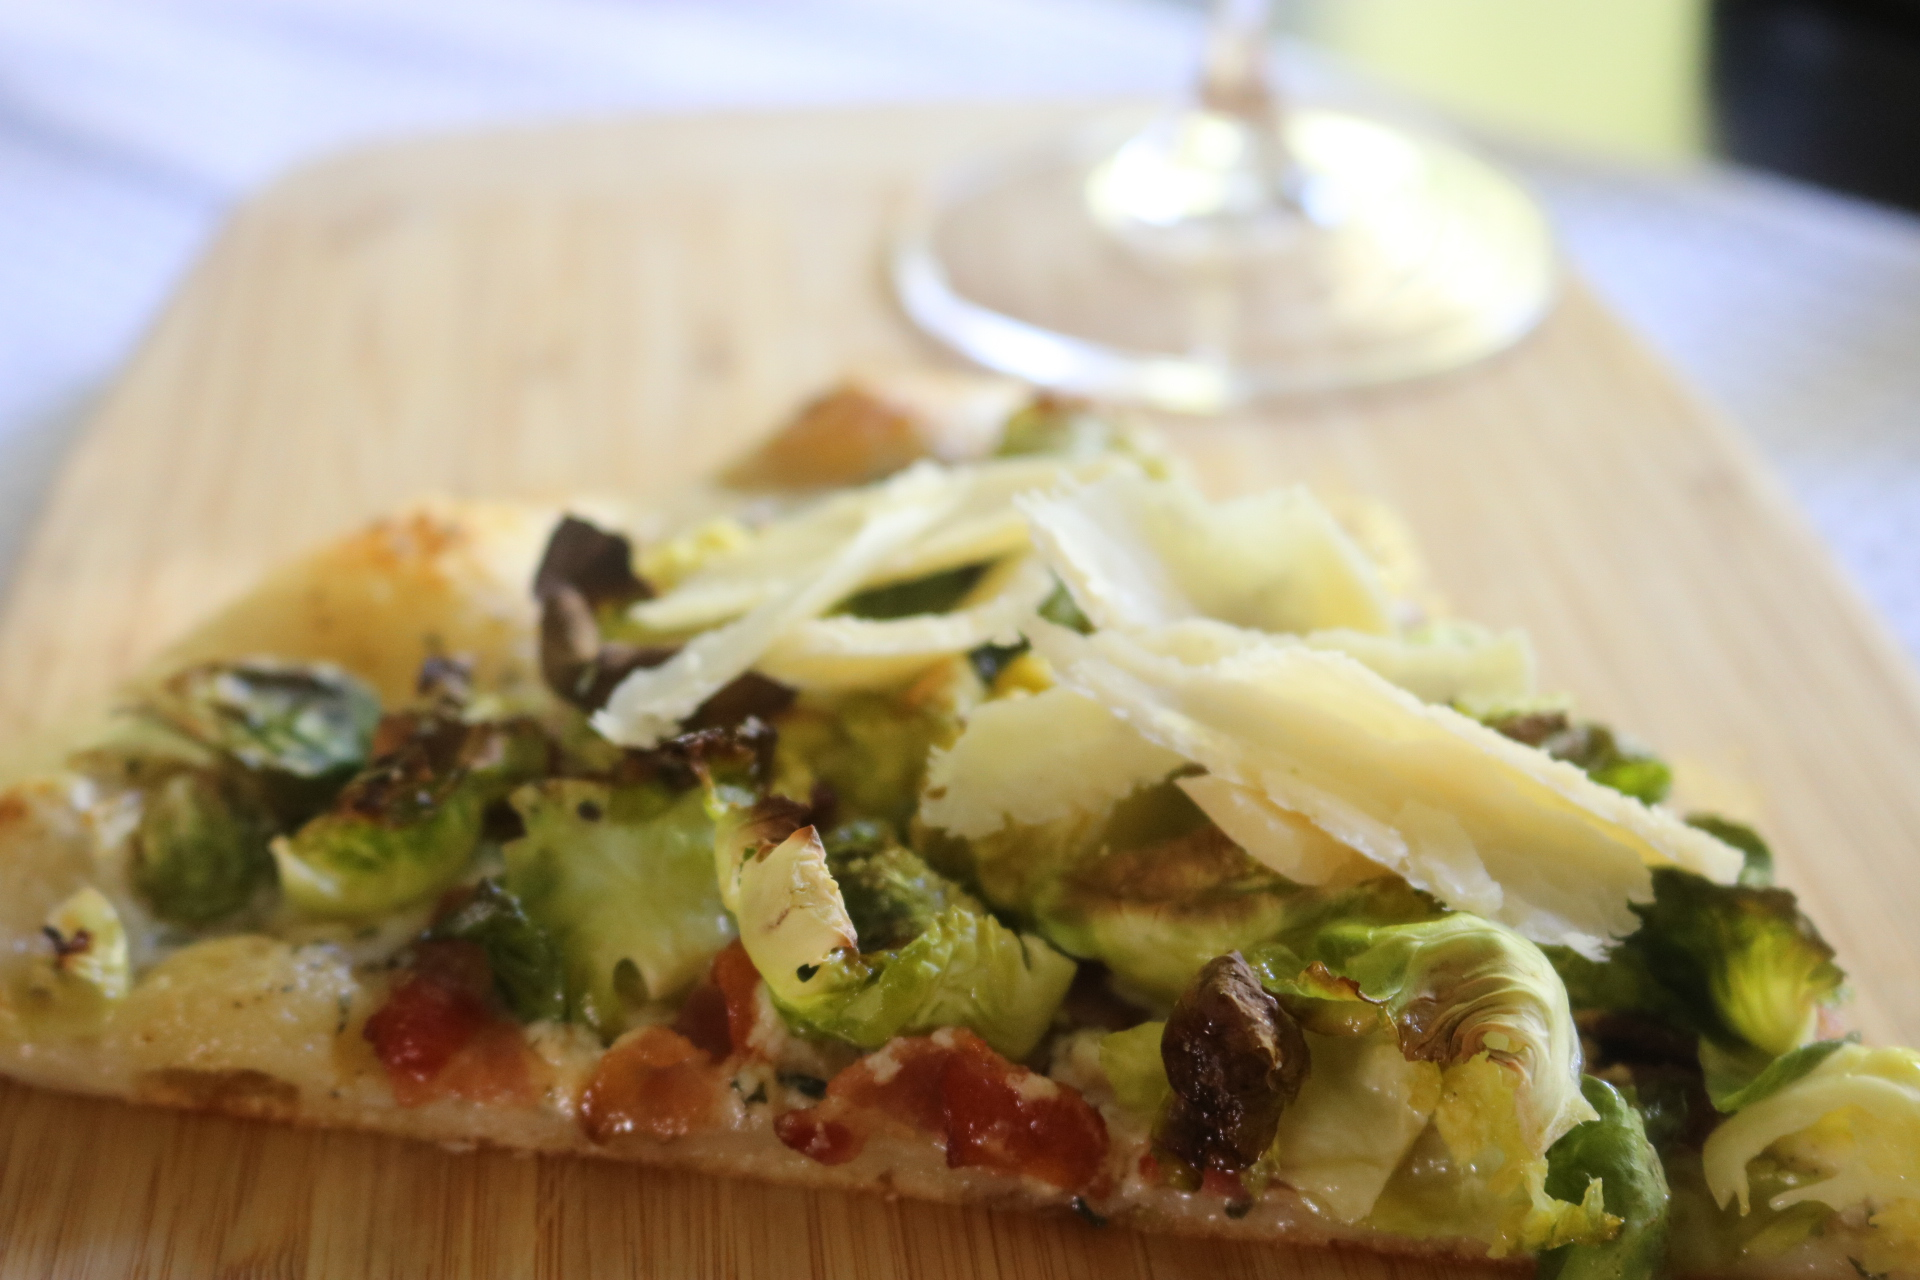 Brussels sprouts with bacon pizza - this pizza will revolutionize the way you think about pizza night ~ www.mangiamichelle.com